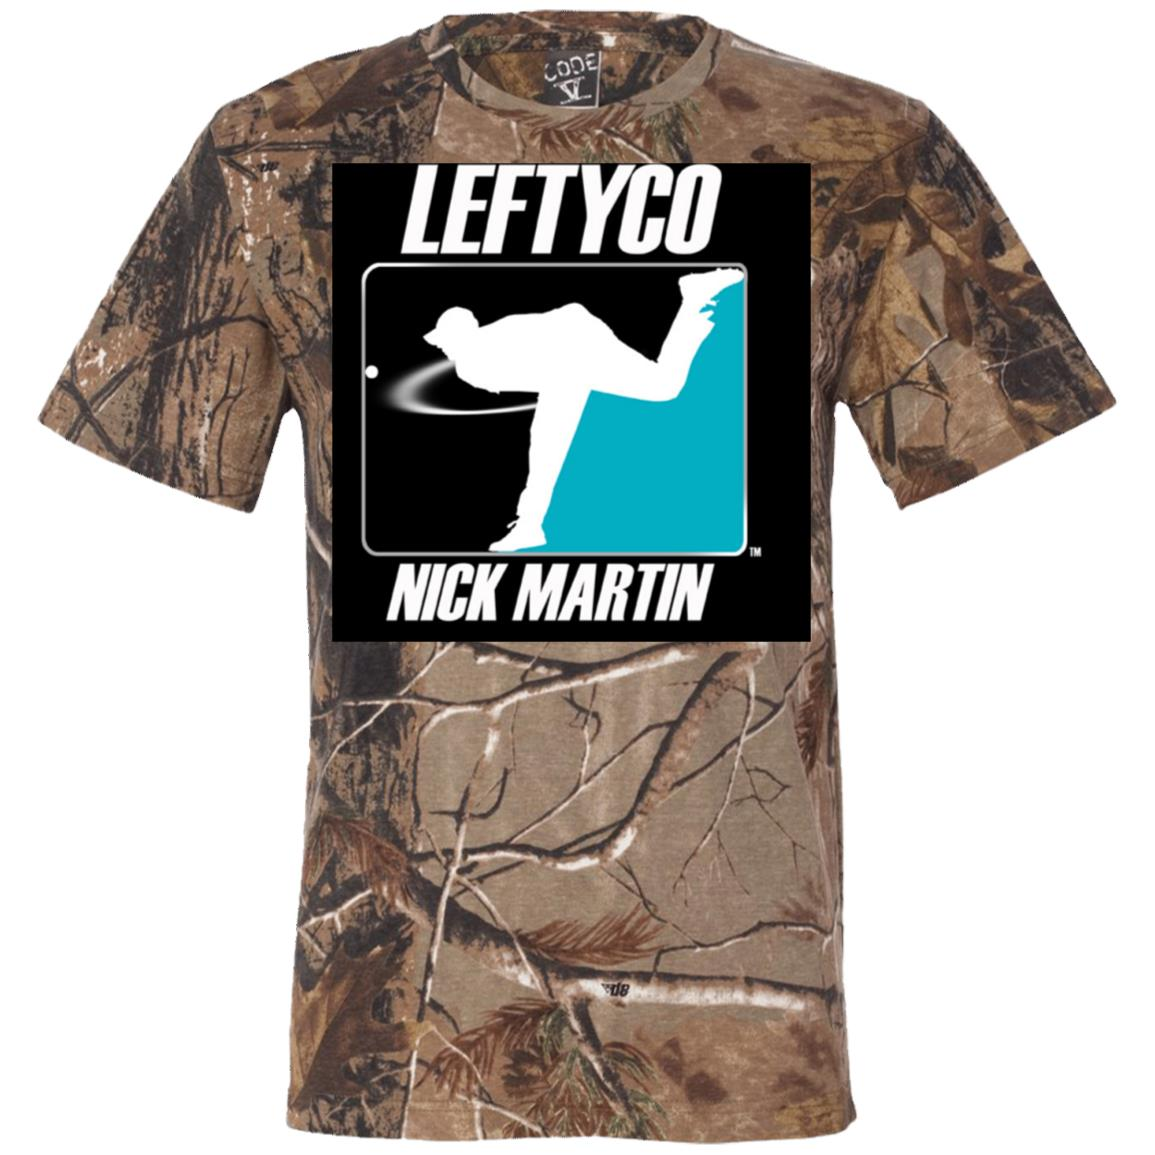 LeftyCo - 814 Short Sleeve Camouflage T-Shirt - leftyco